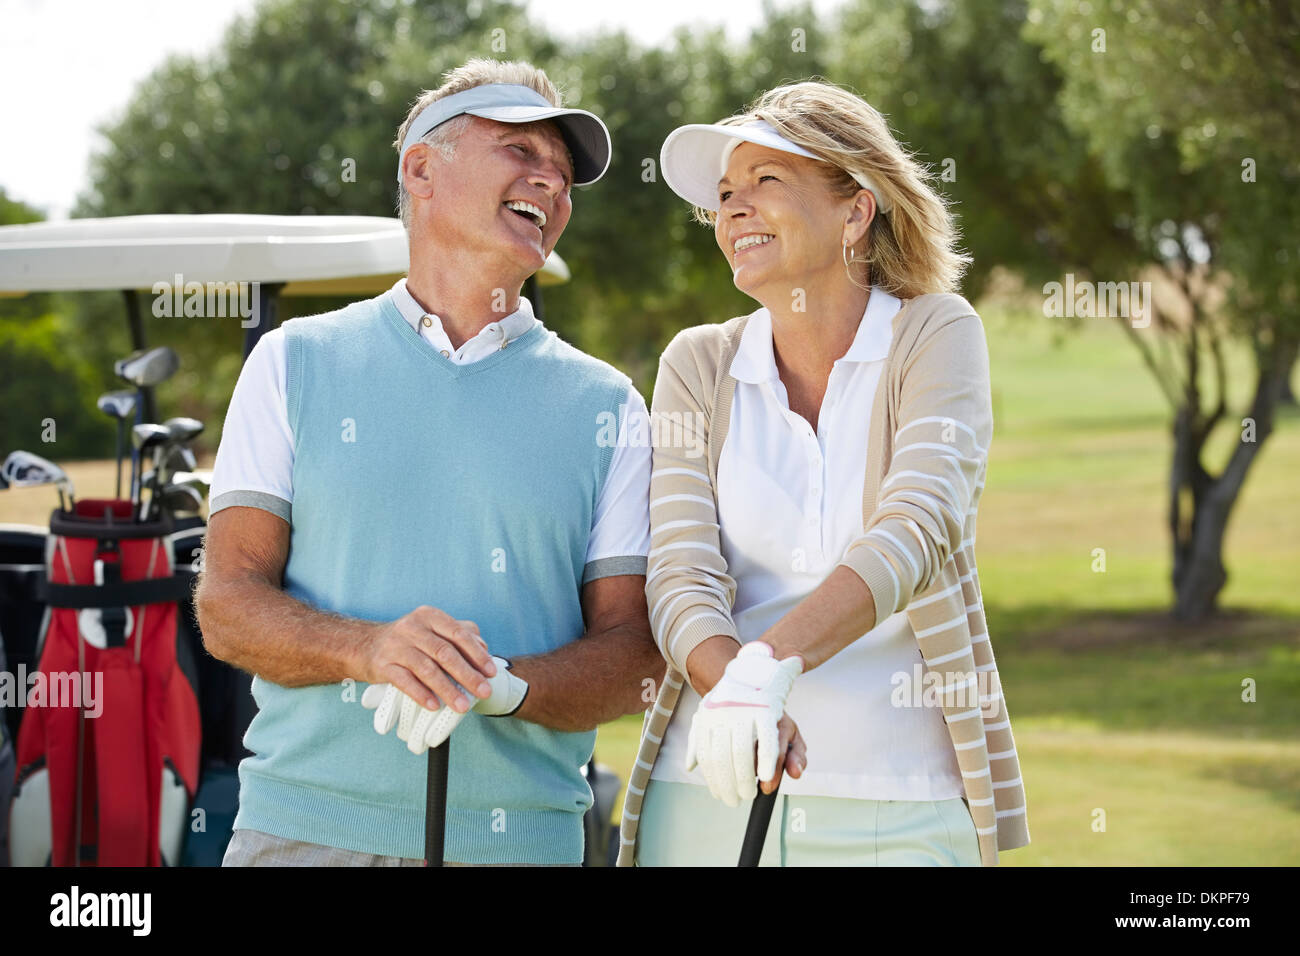 Senior couple laughing on golf course - Stock Image